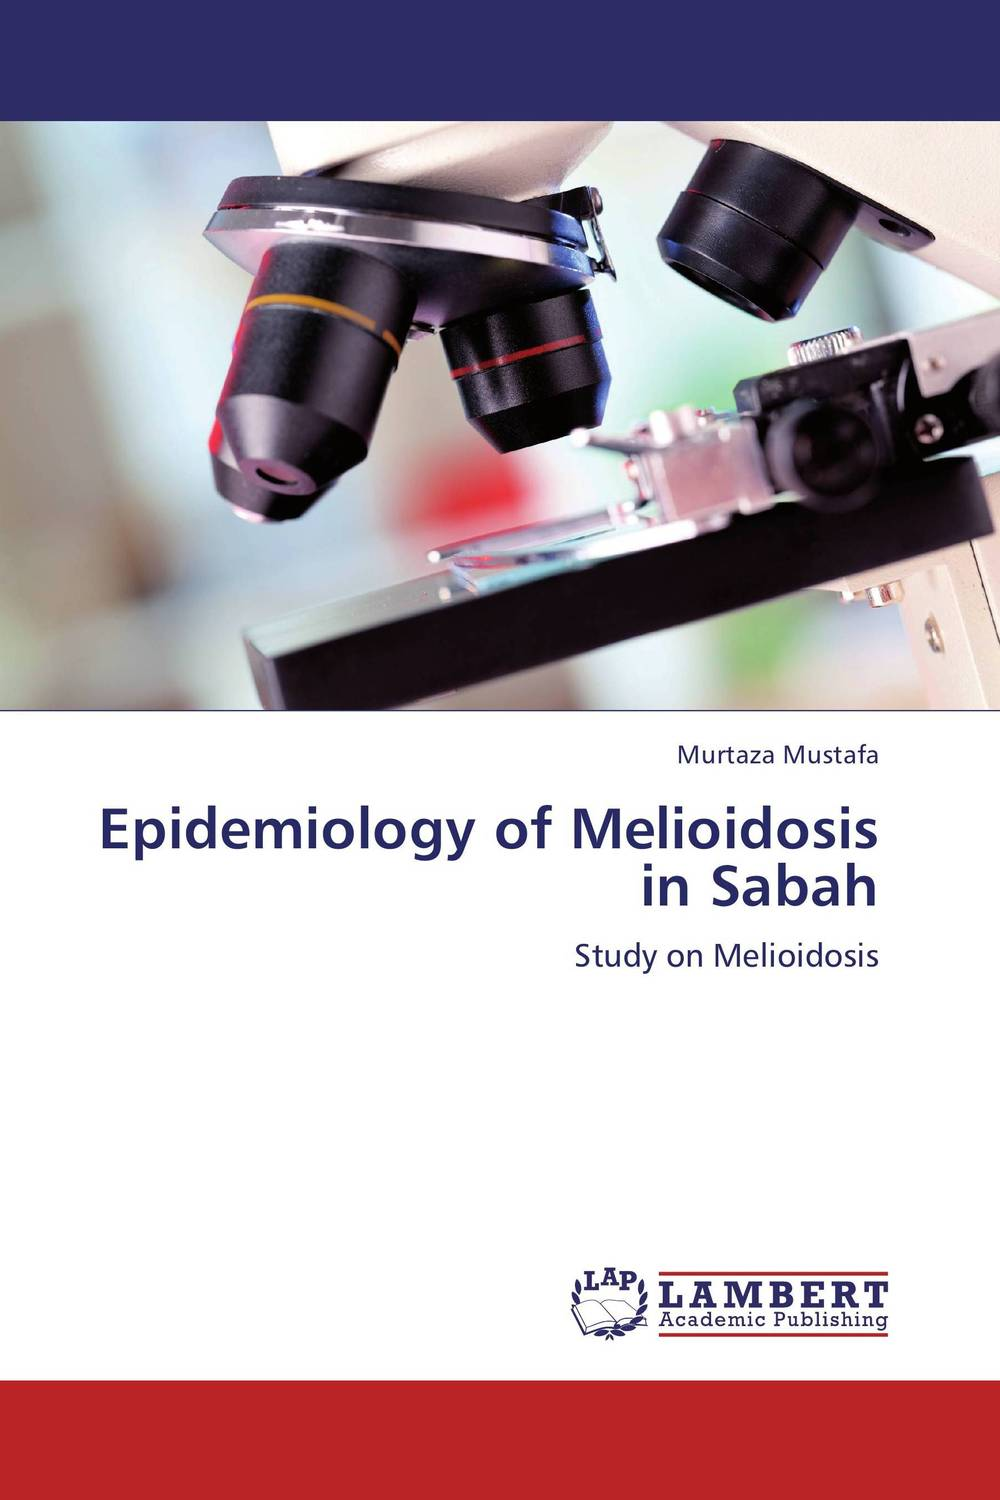 Epidemiology of Melioidosis in Sabah fundamentals of medical microbiology volume i